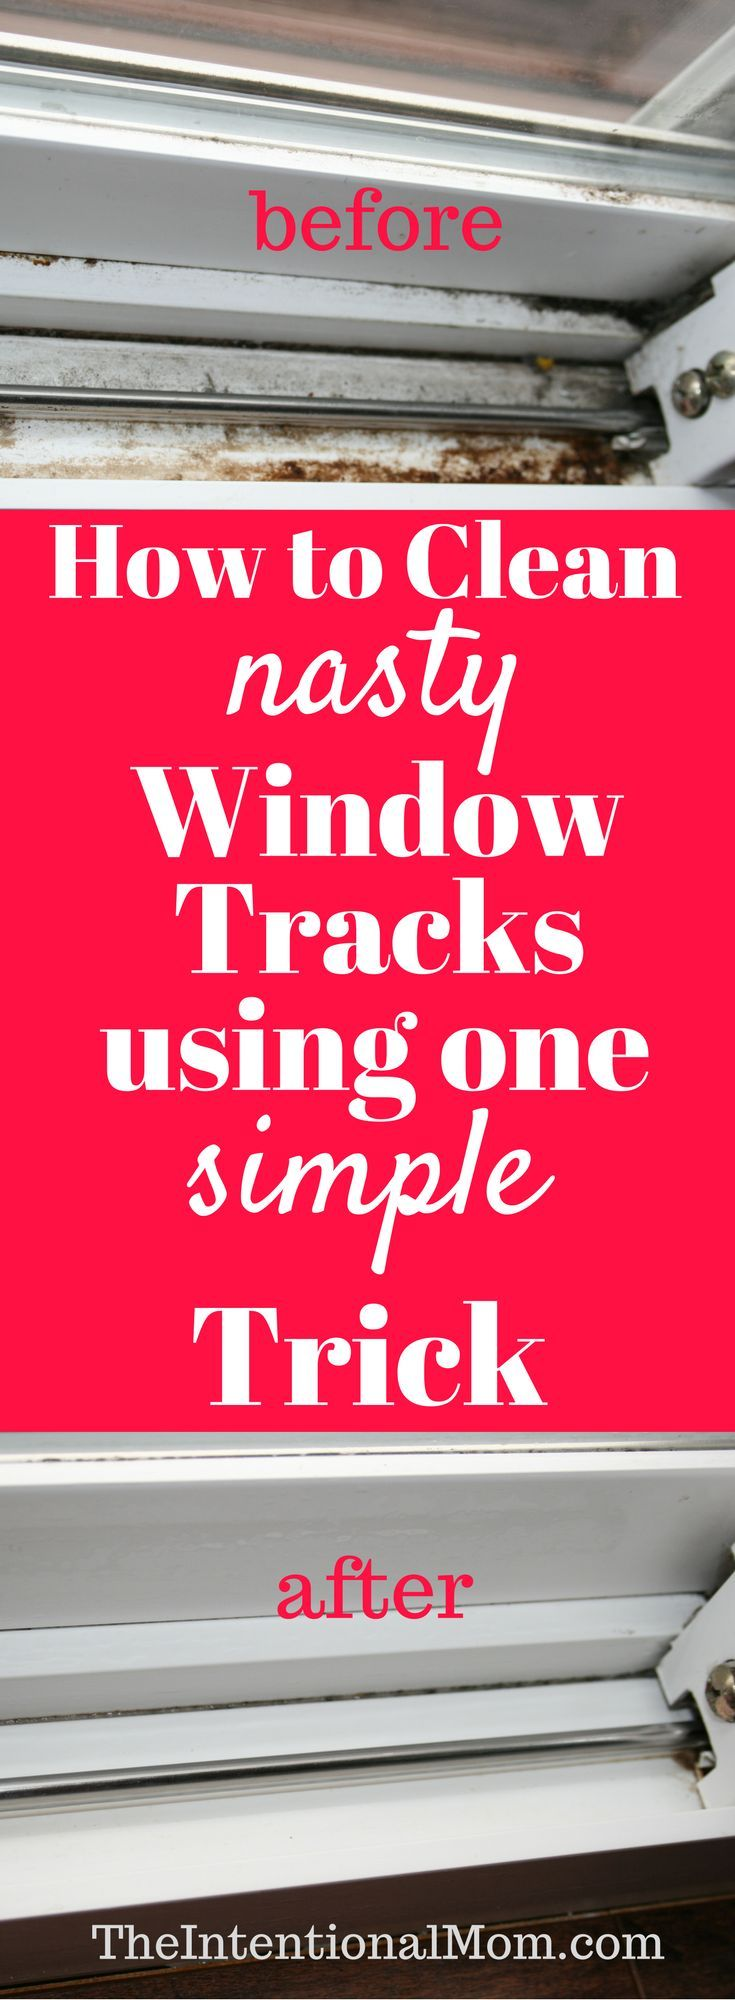 Do you need to clean your nasty window tracks? They can get ugly fast, and no one really likes to clean them. Heres the one simple